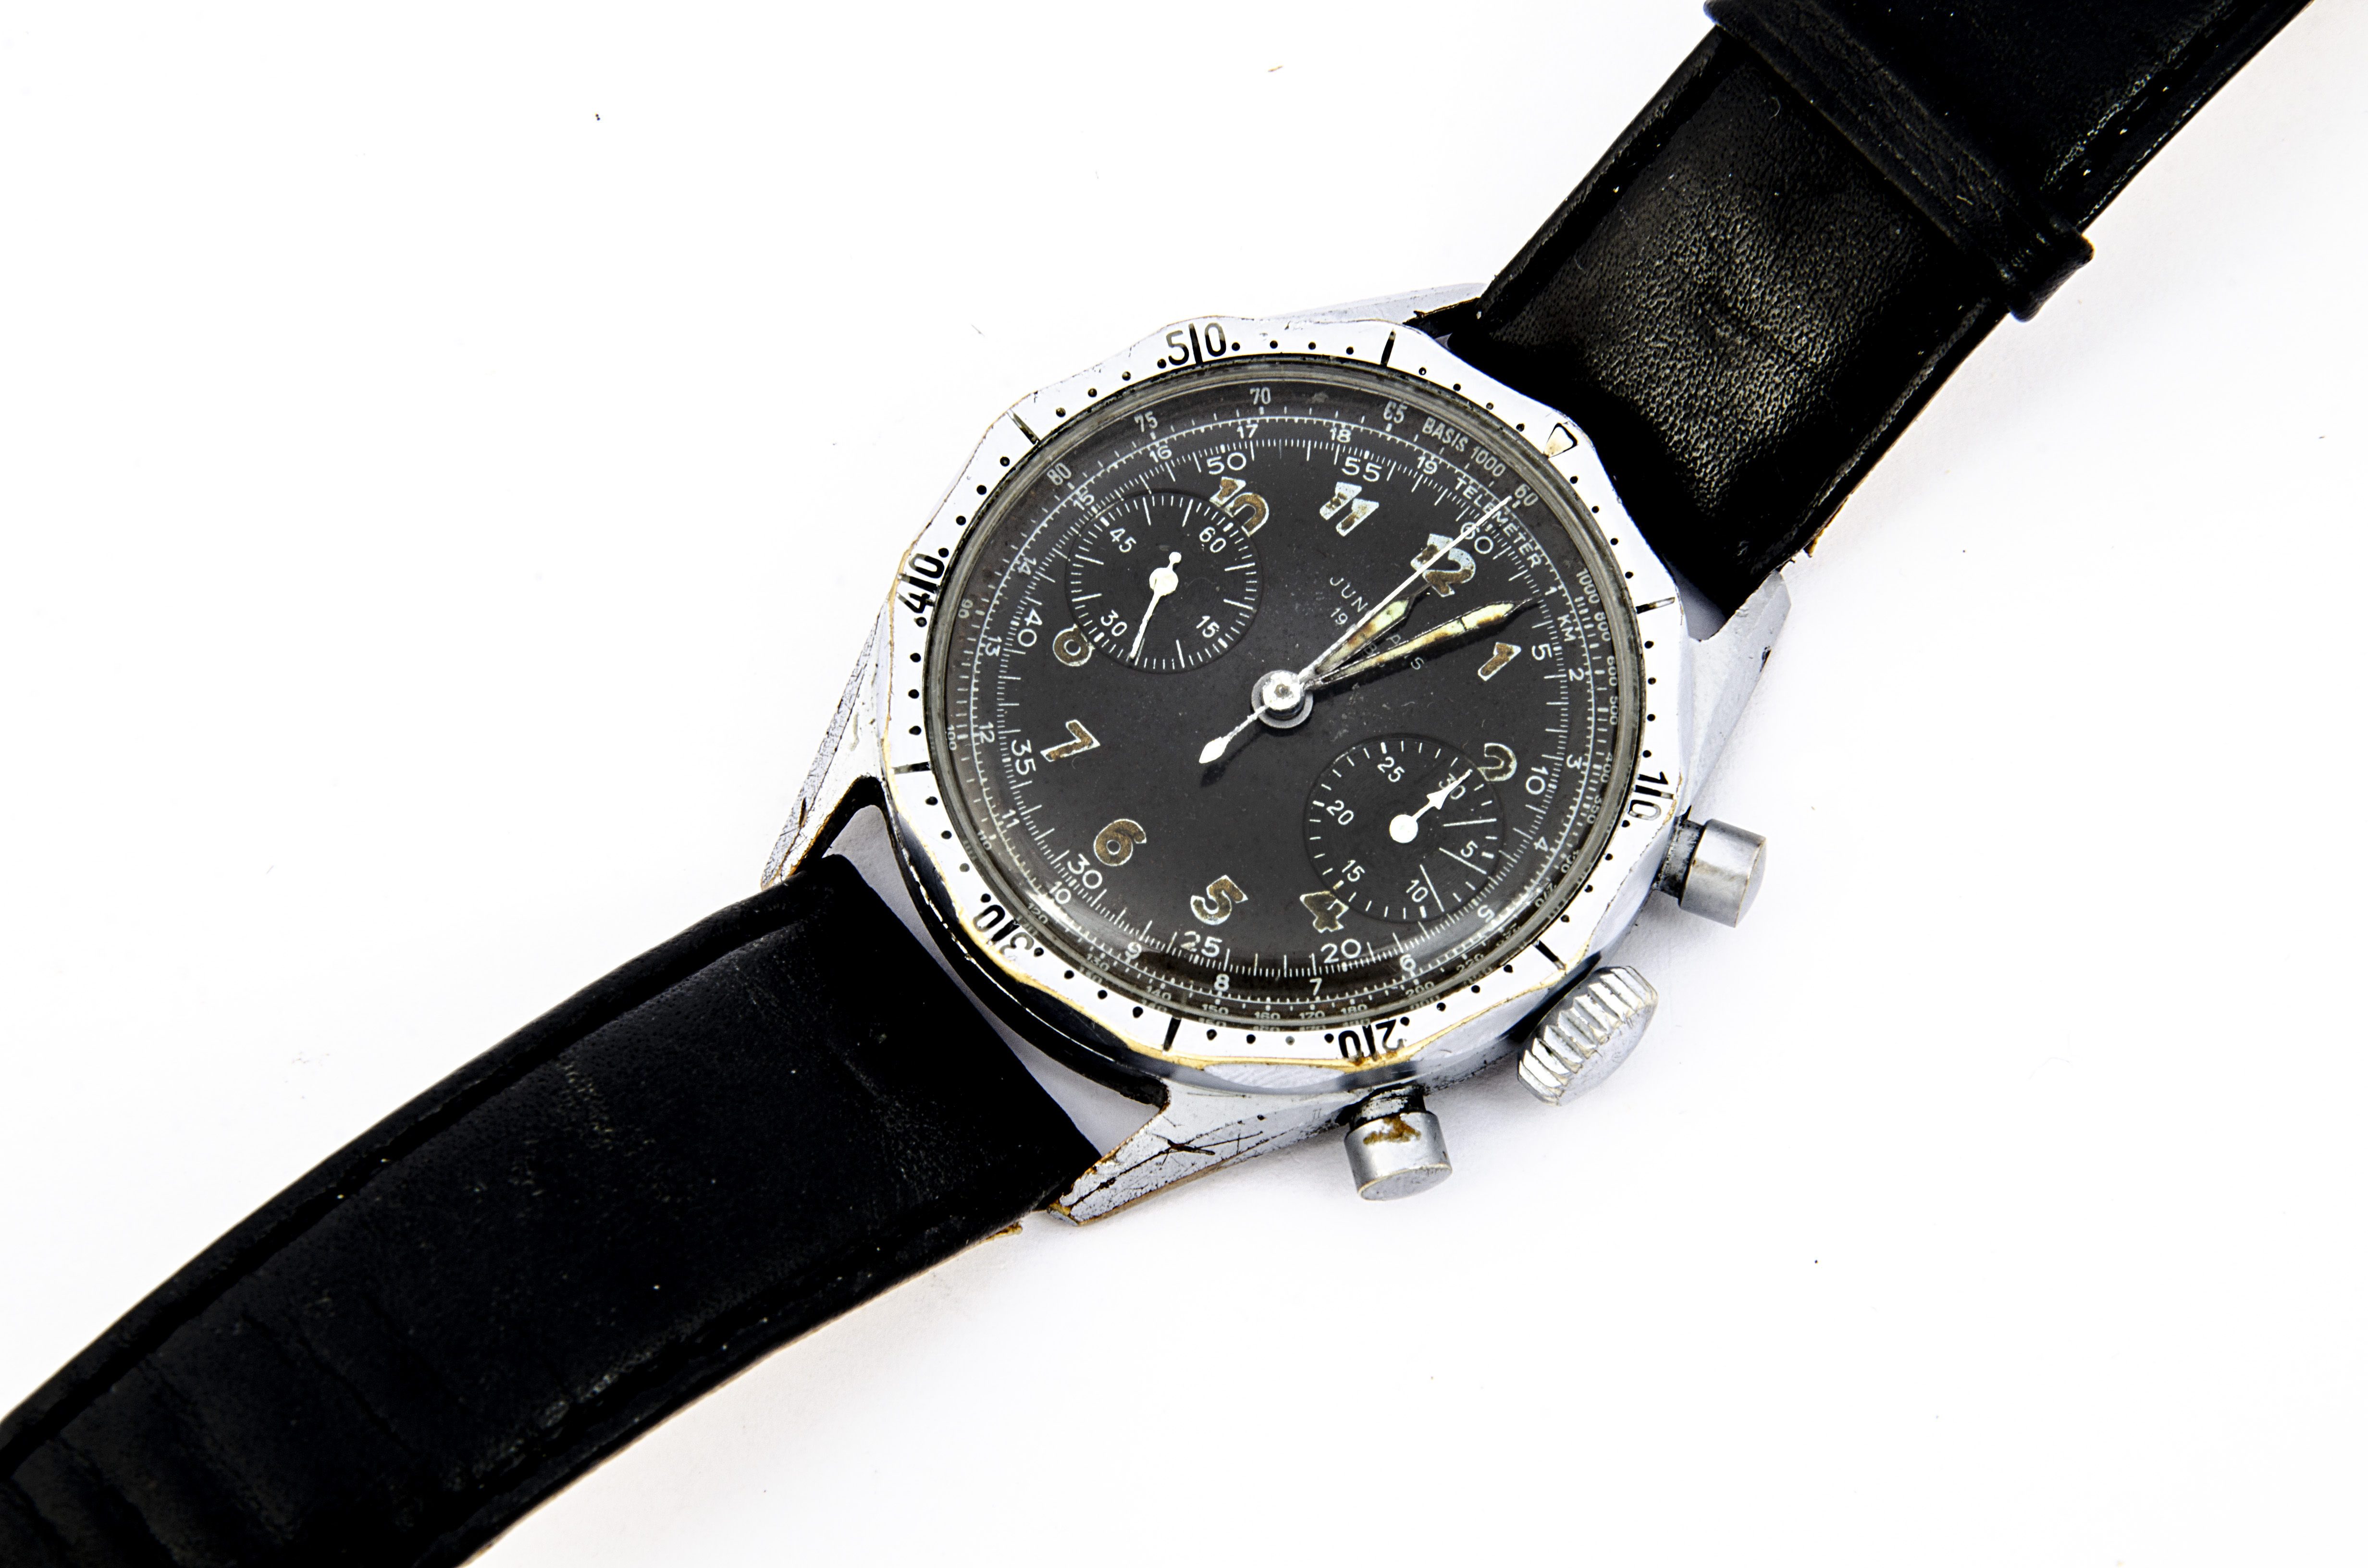 A c1960s Junghans Military German Airforce wristwatch, 38mm nickel plated case, running, two push